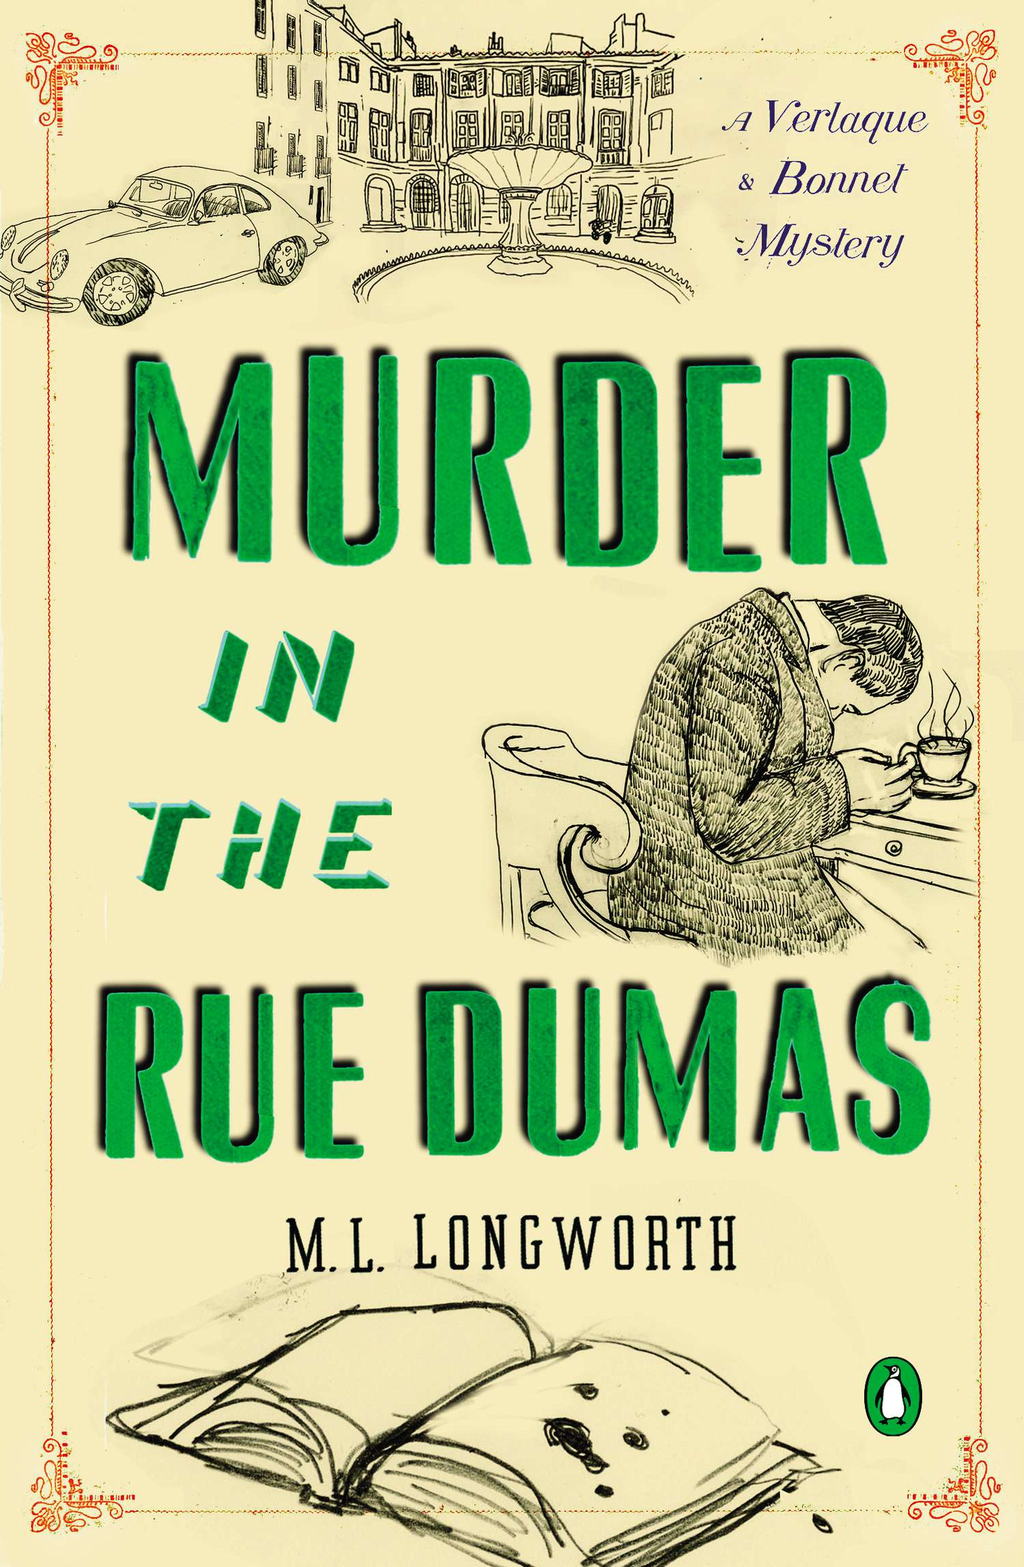 Murder in the Rue Dumas By: M. L. Longworth